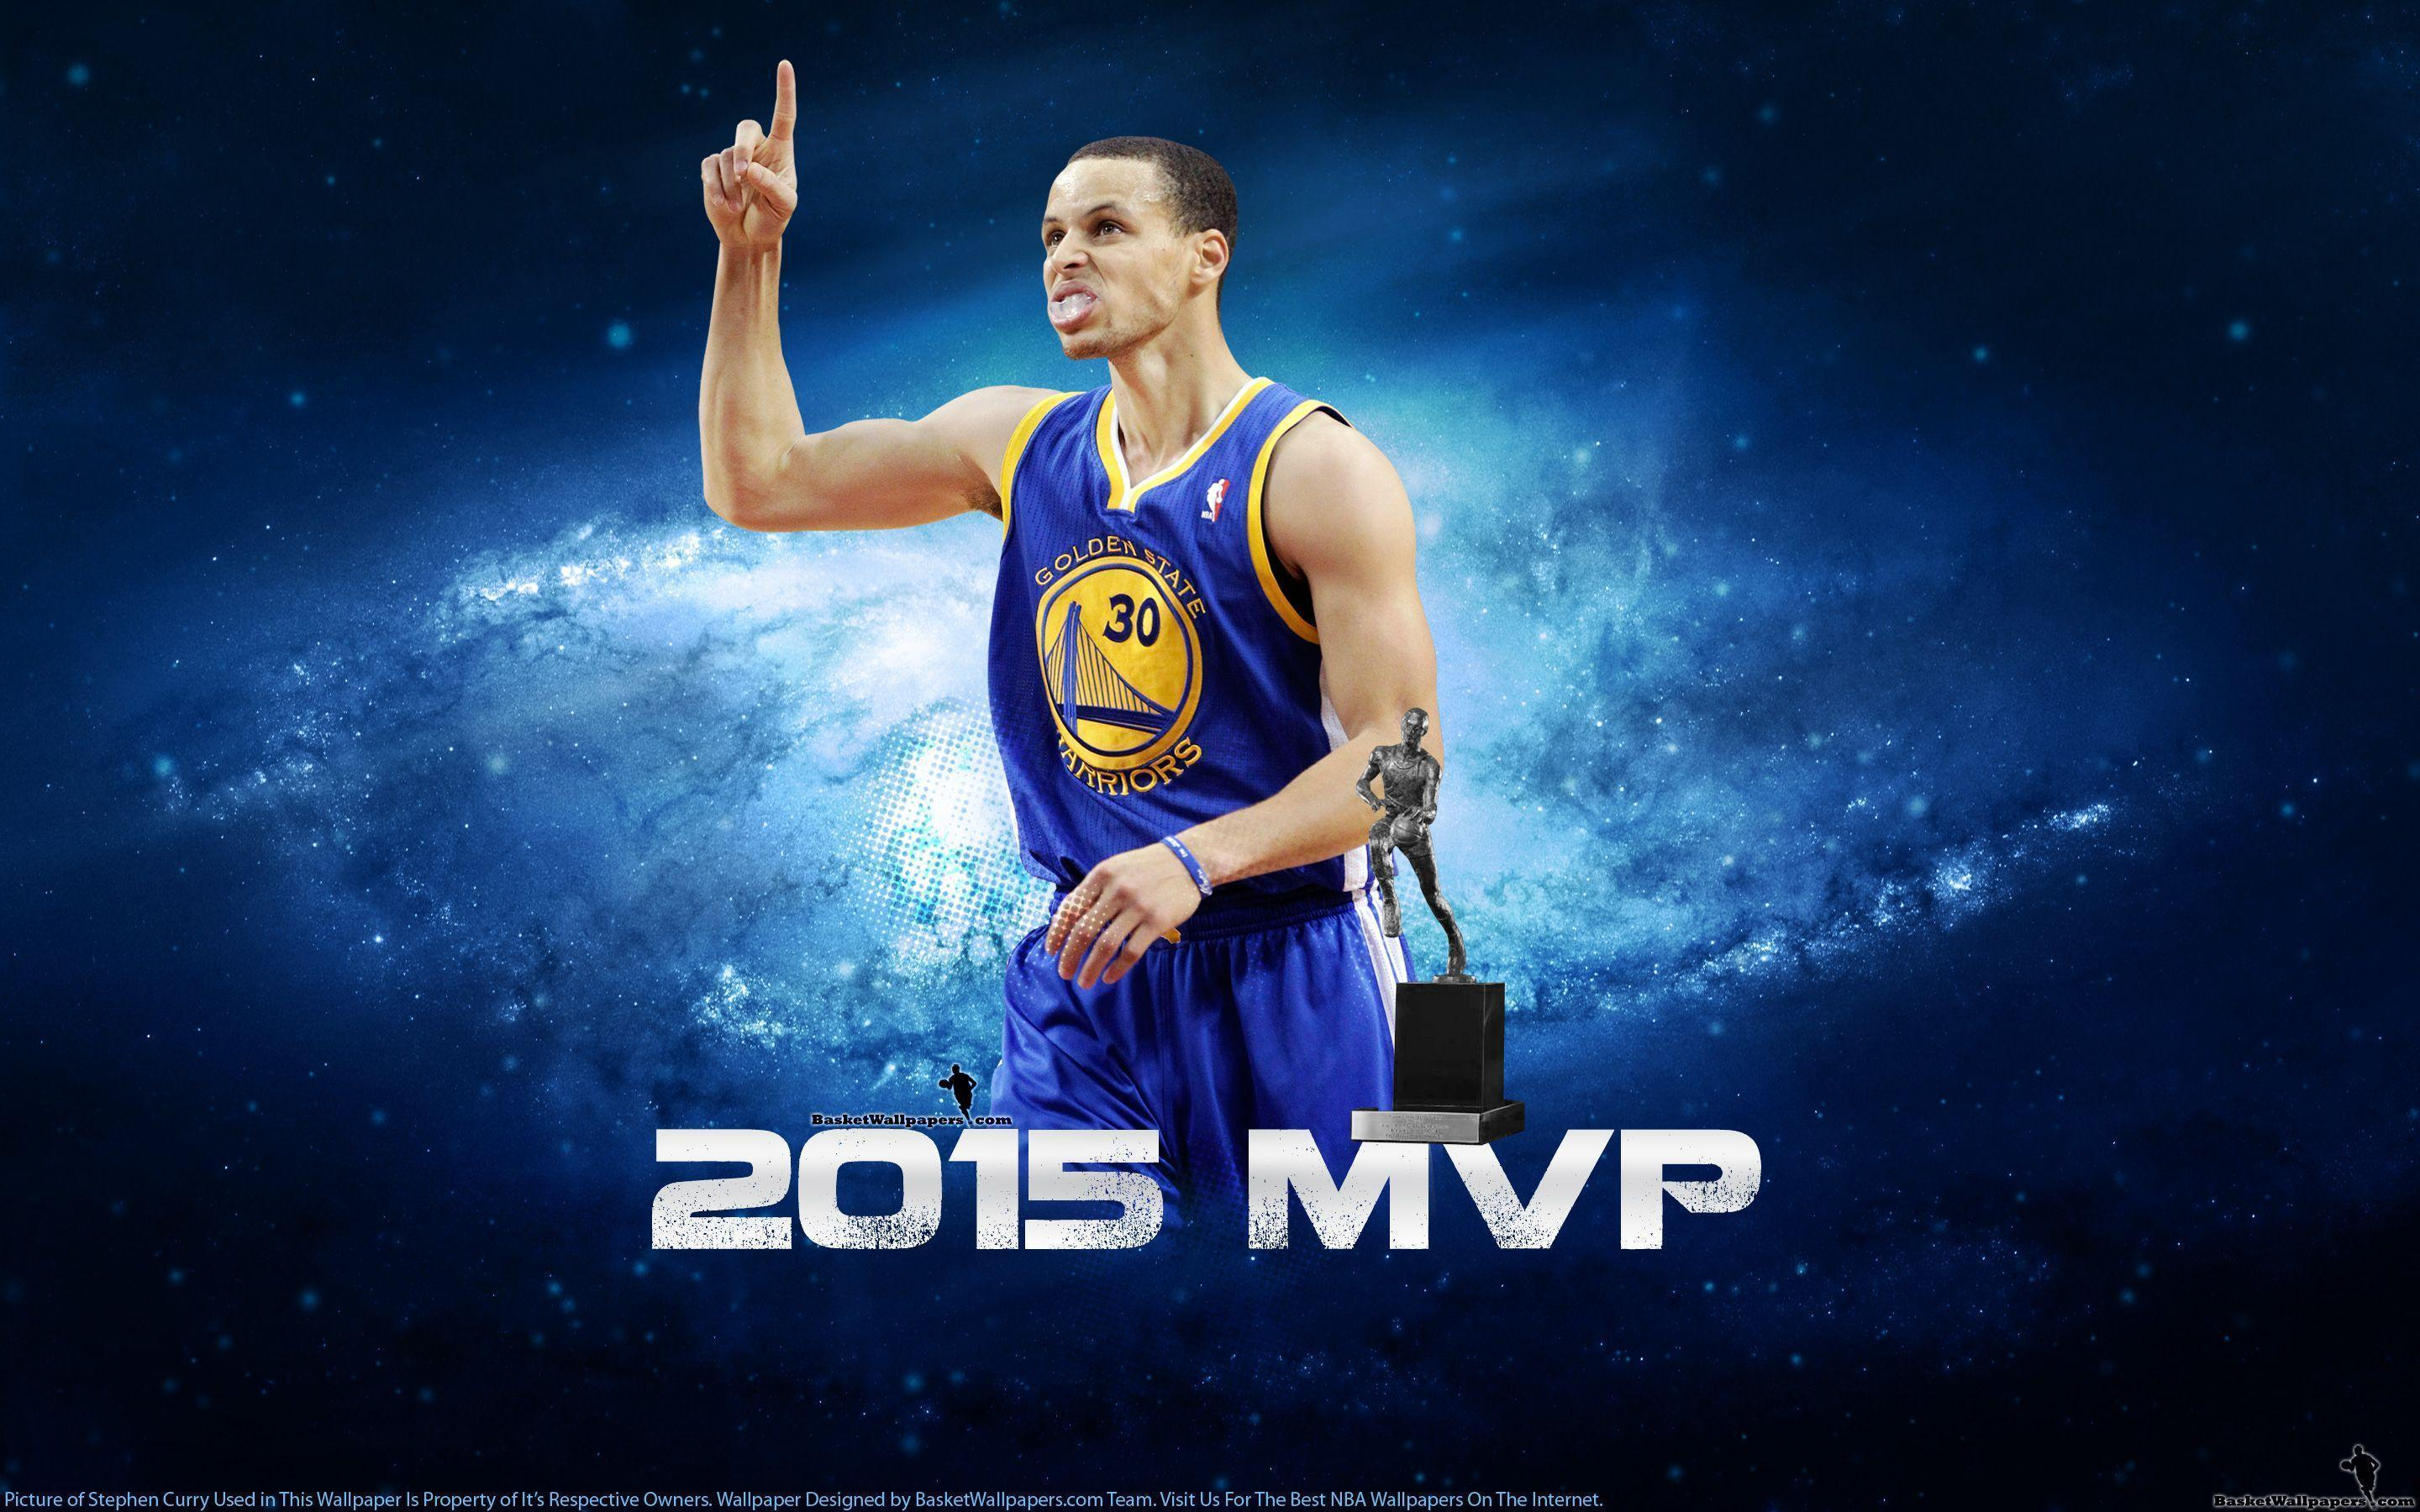 Stephen Curry Wallpapers | Basketball Wallpapers at ...